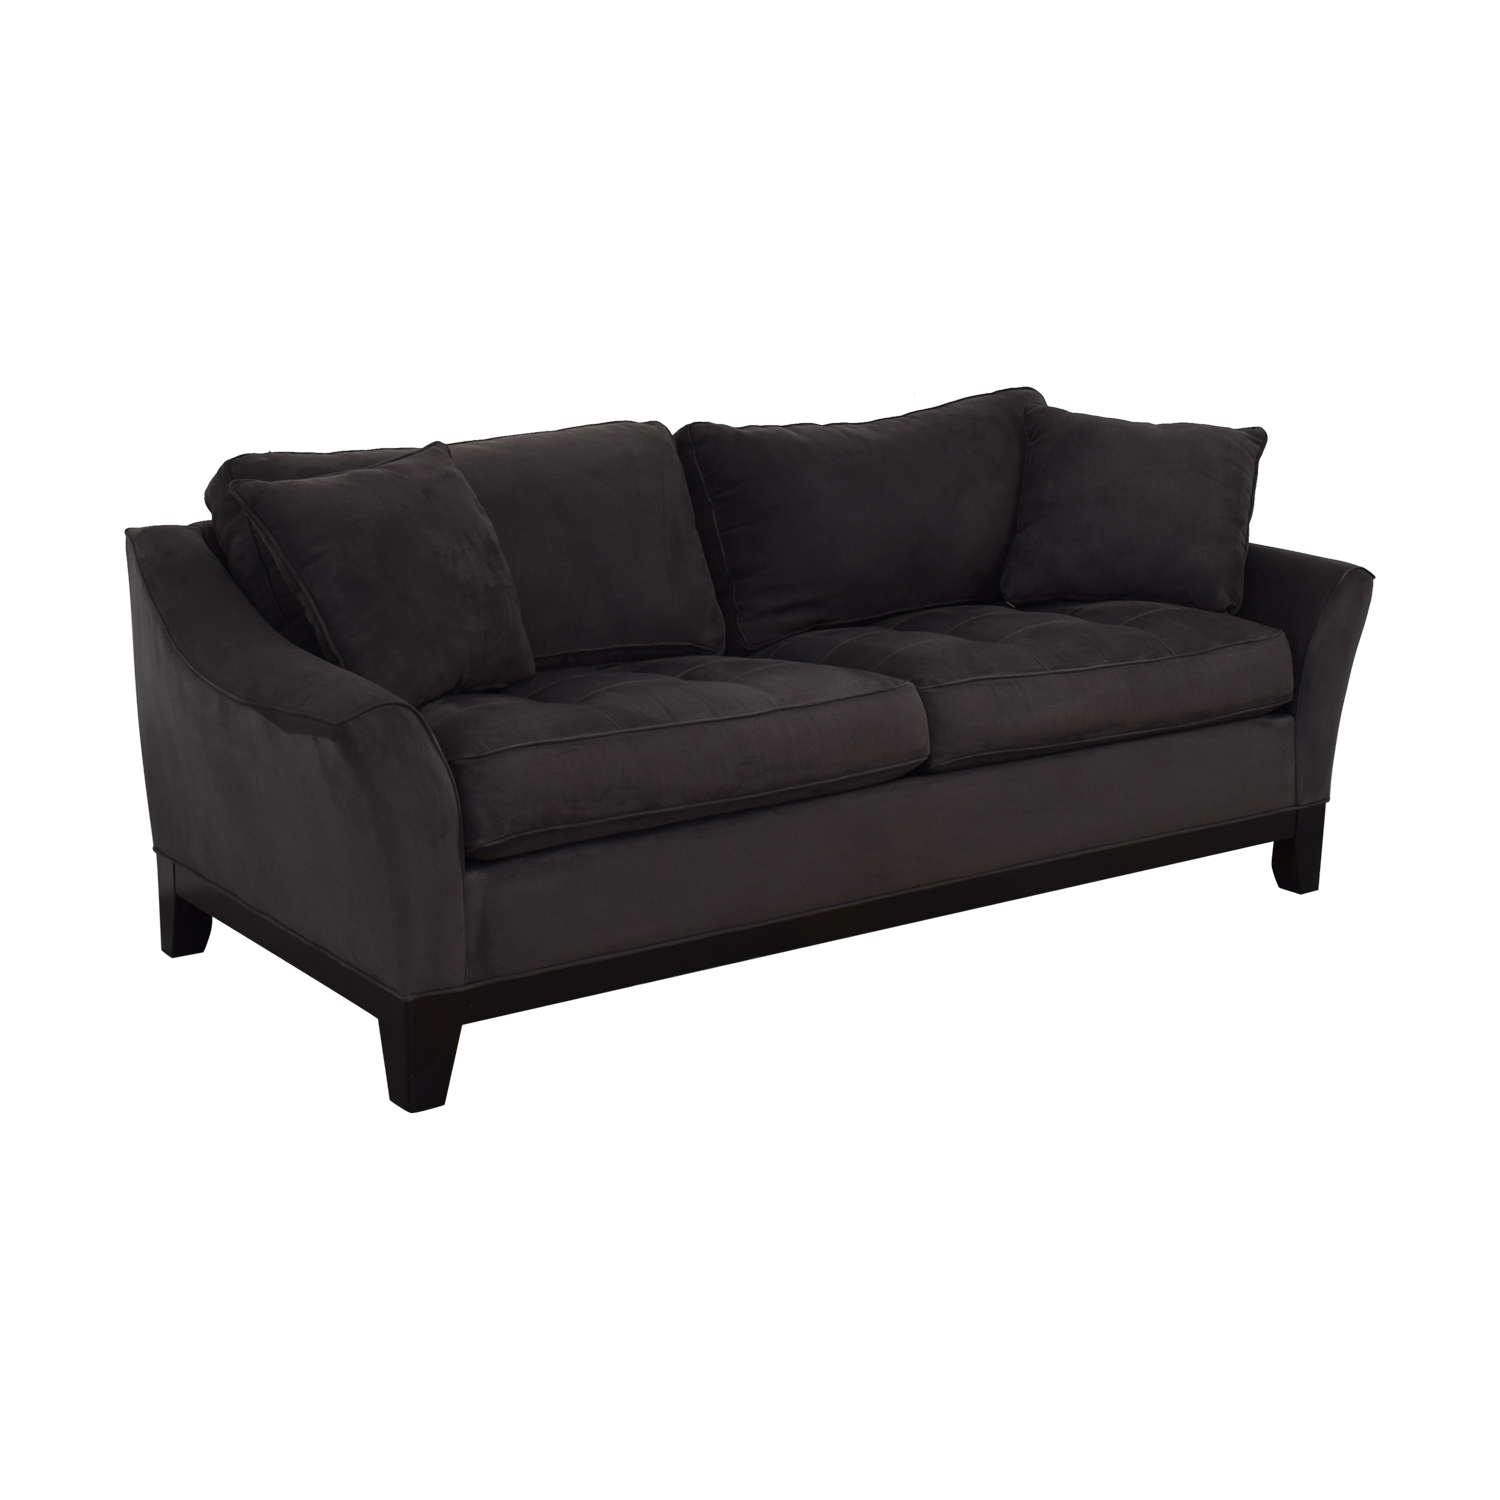 56 Off Hm Richards Furniture Hm Richards Sofa Bed Sofas